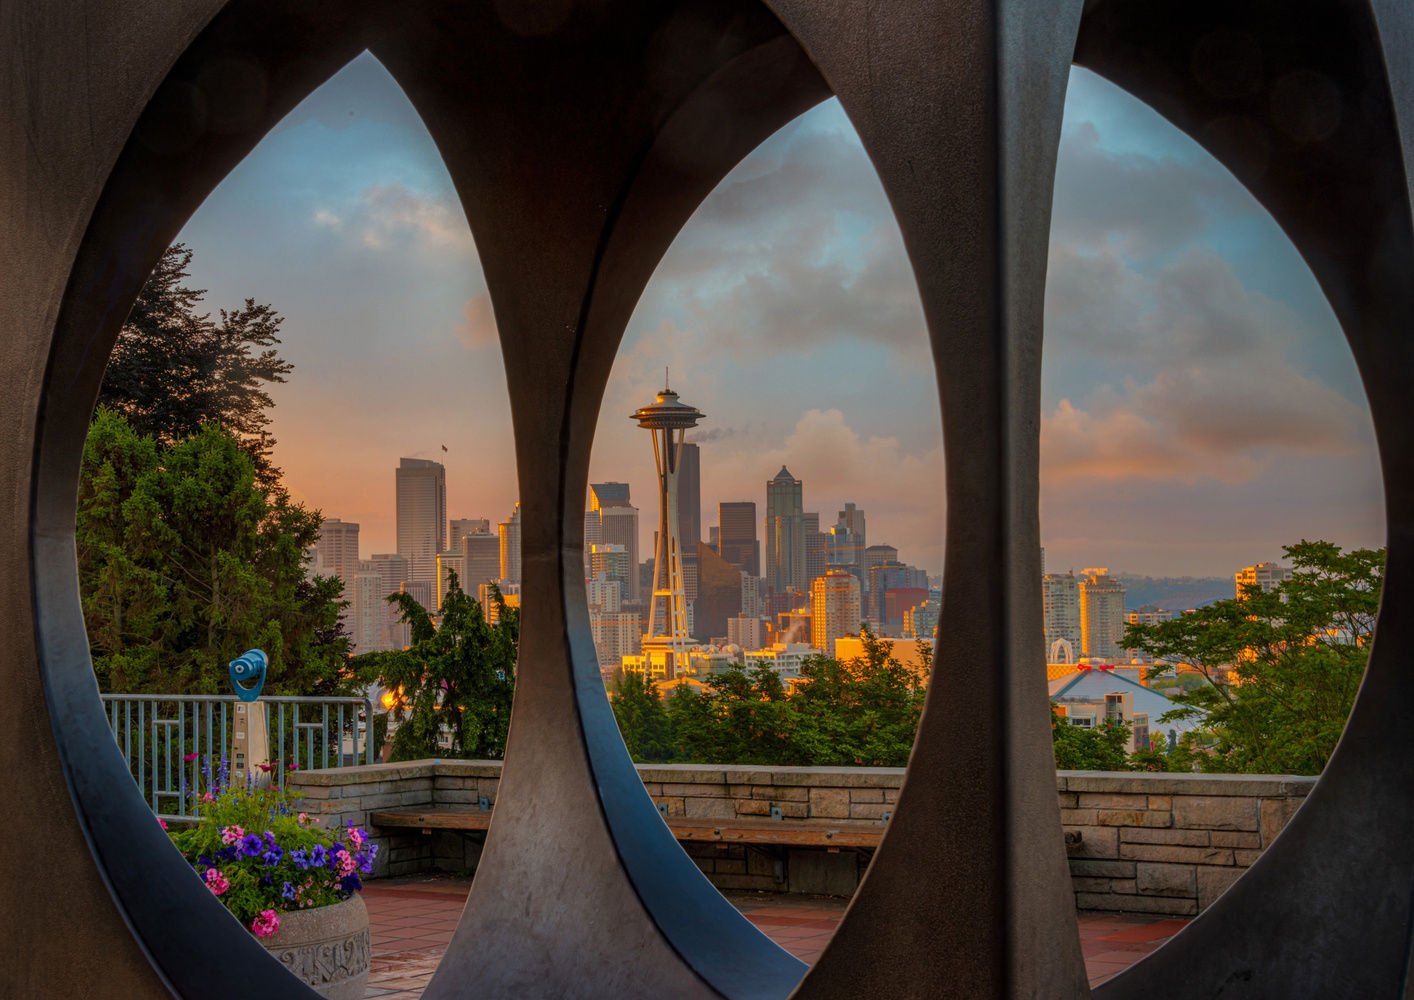 Seattle Dawn by Alex Hill